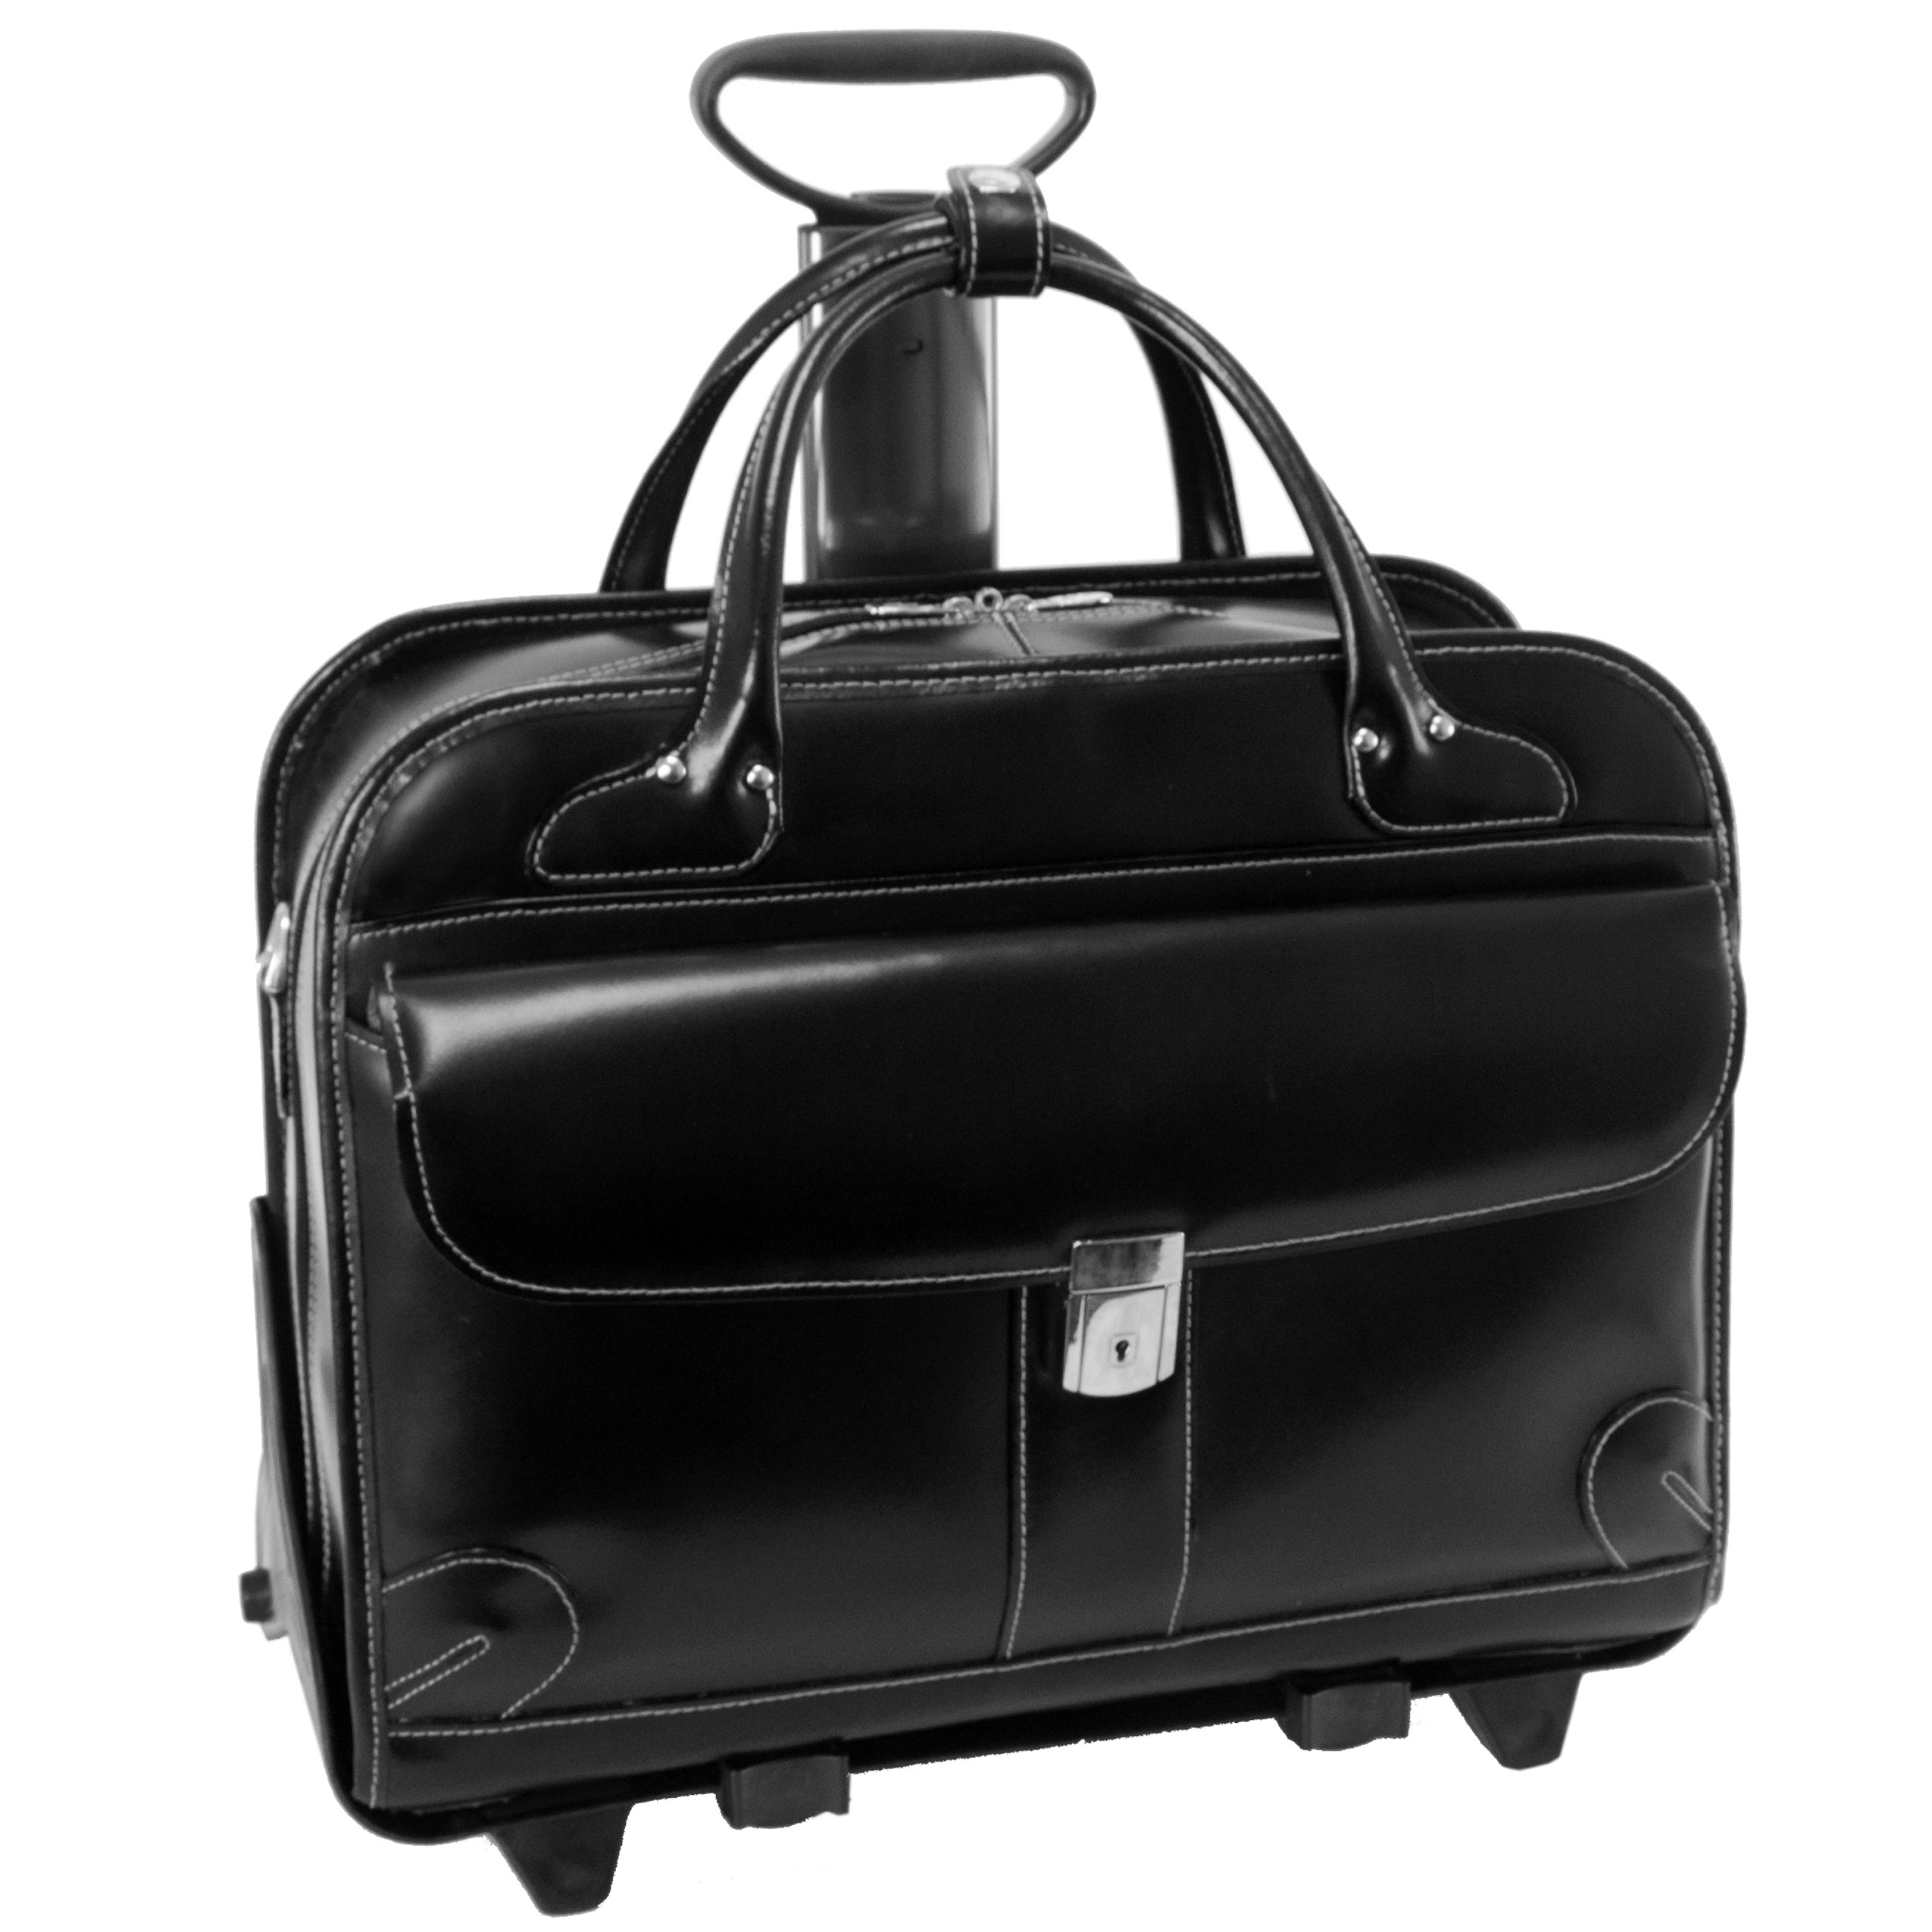 McKleinUSA LAKEWOOD 96615 Black Leather Fly-Through Checkpoint-Friendly Detachable-Wheeled Ladies' Briefcase